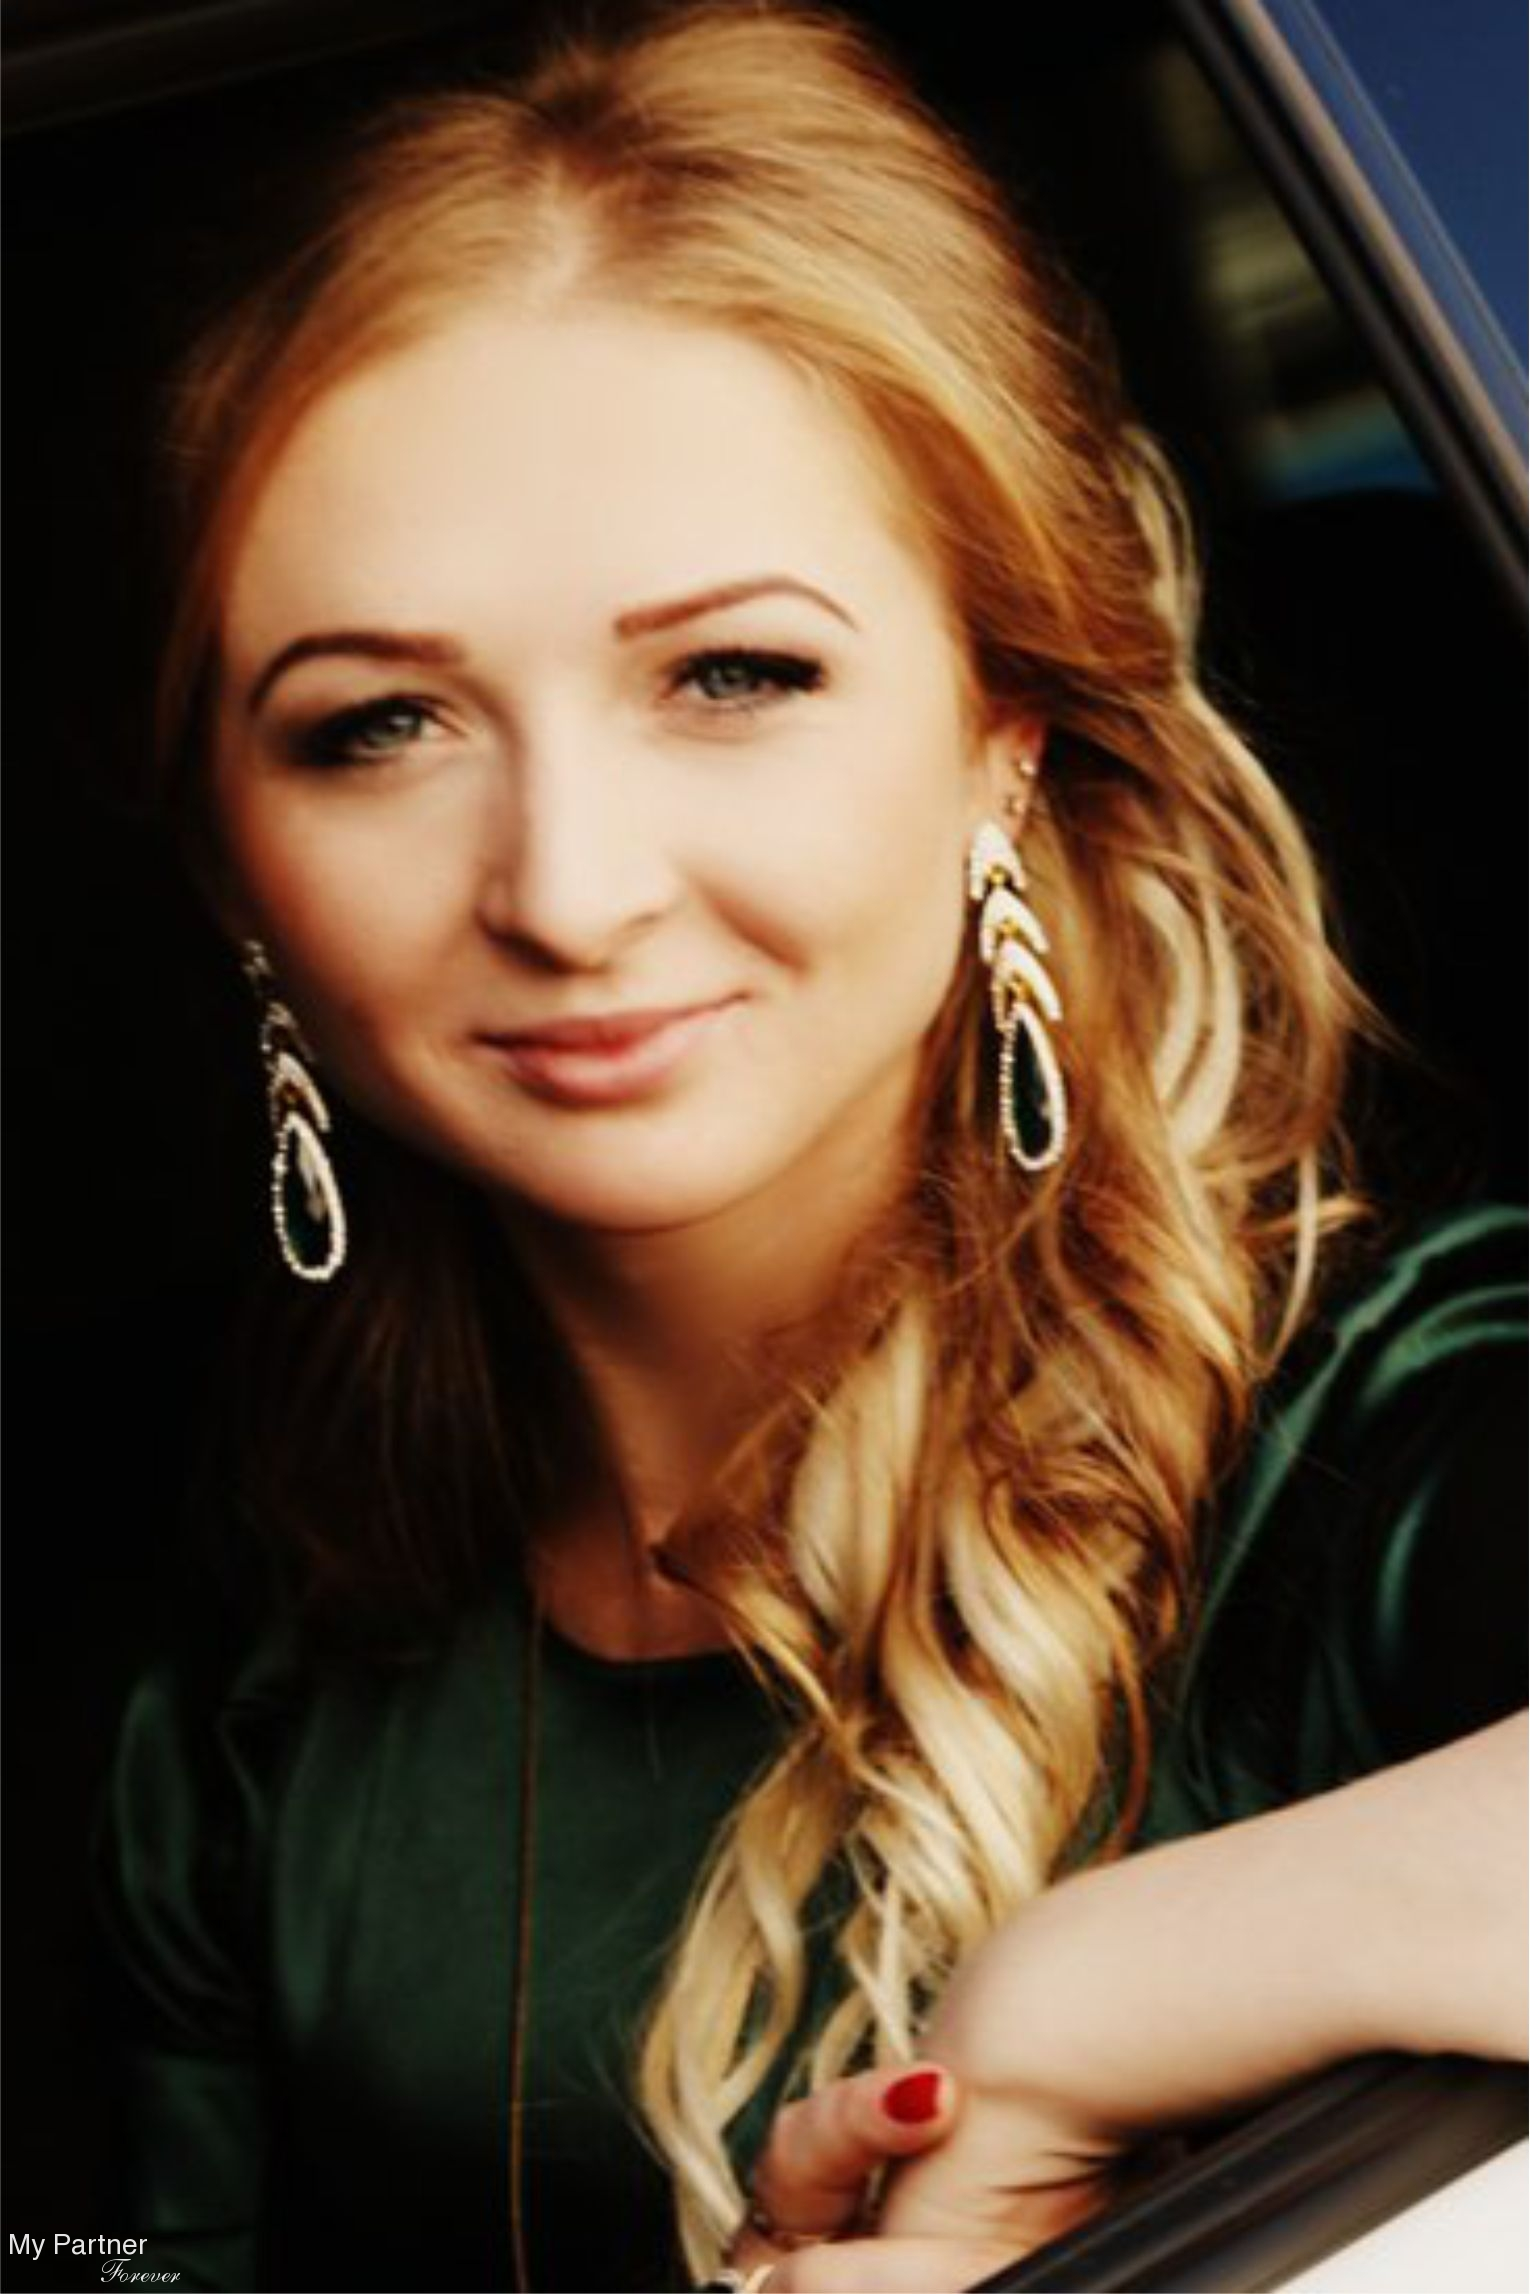 Dating with Ukrainian Woman Bogdana from Vinnitsa, Ukraine